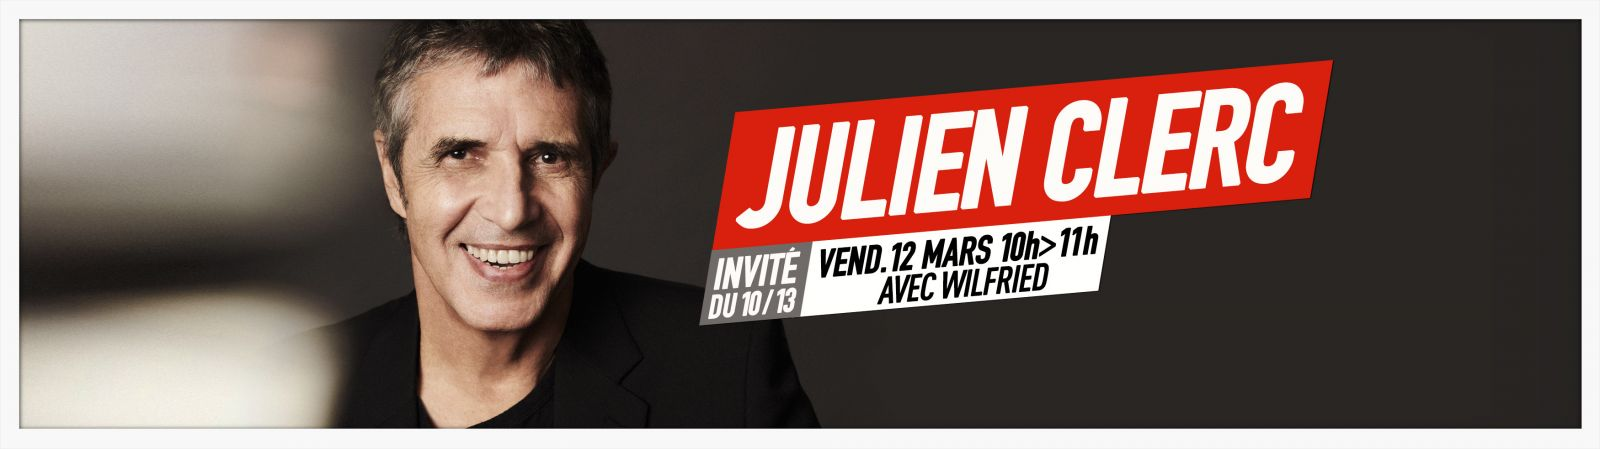 Julien Clerc invité du 09 12